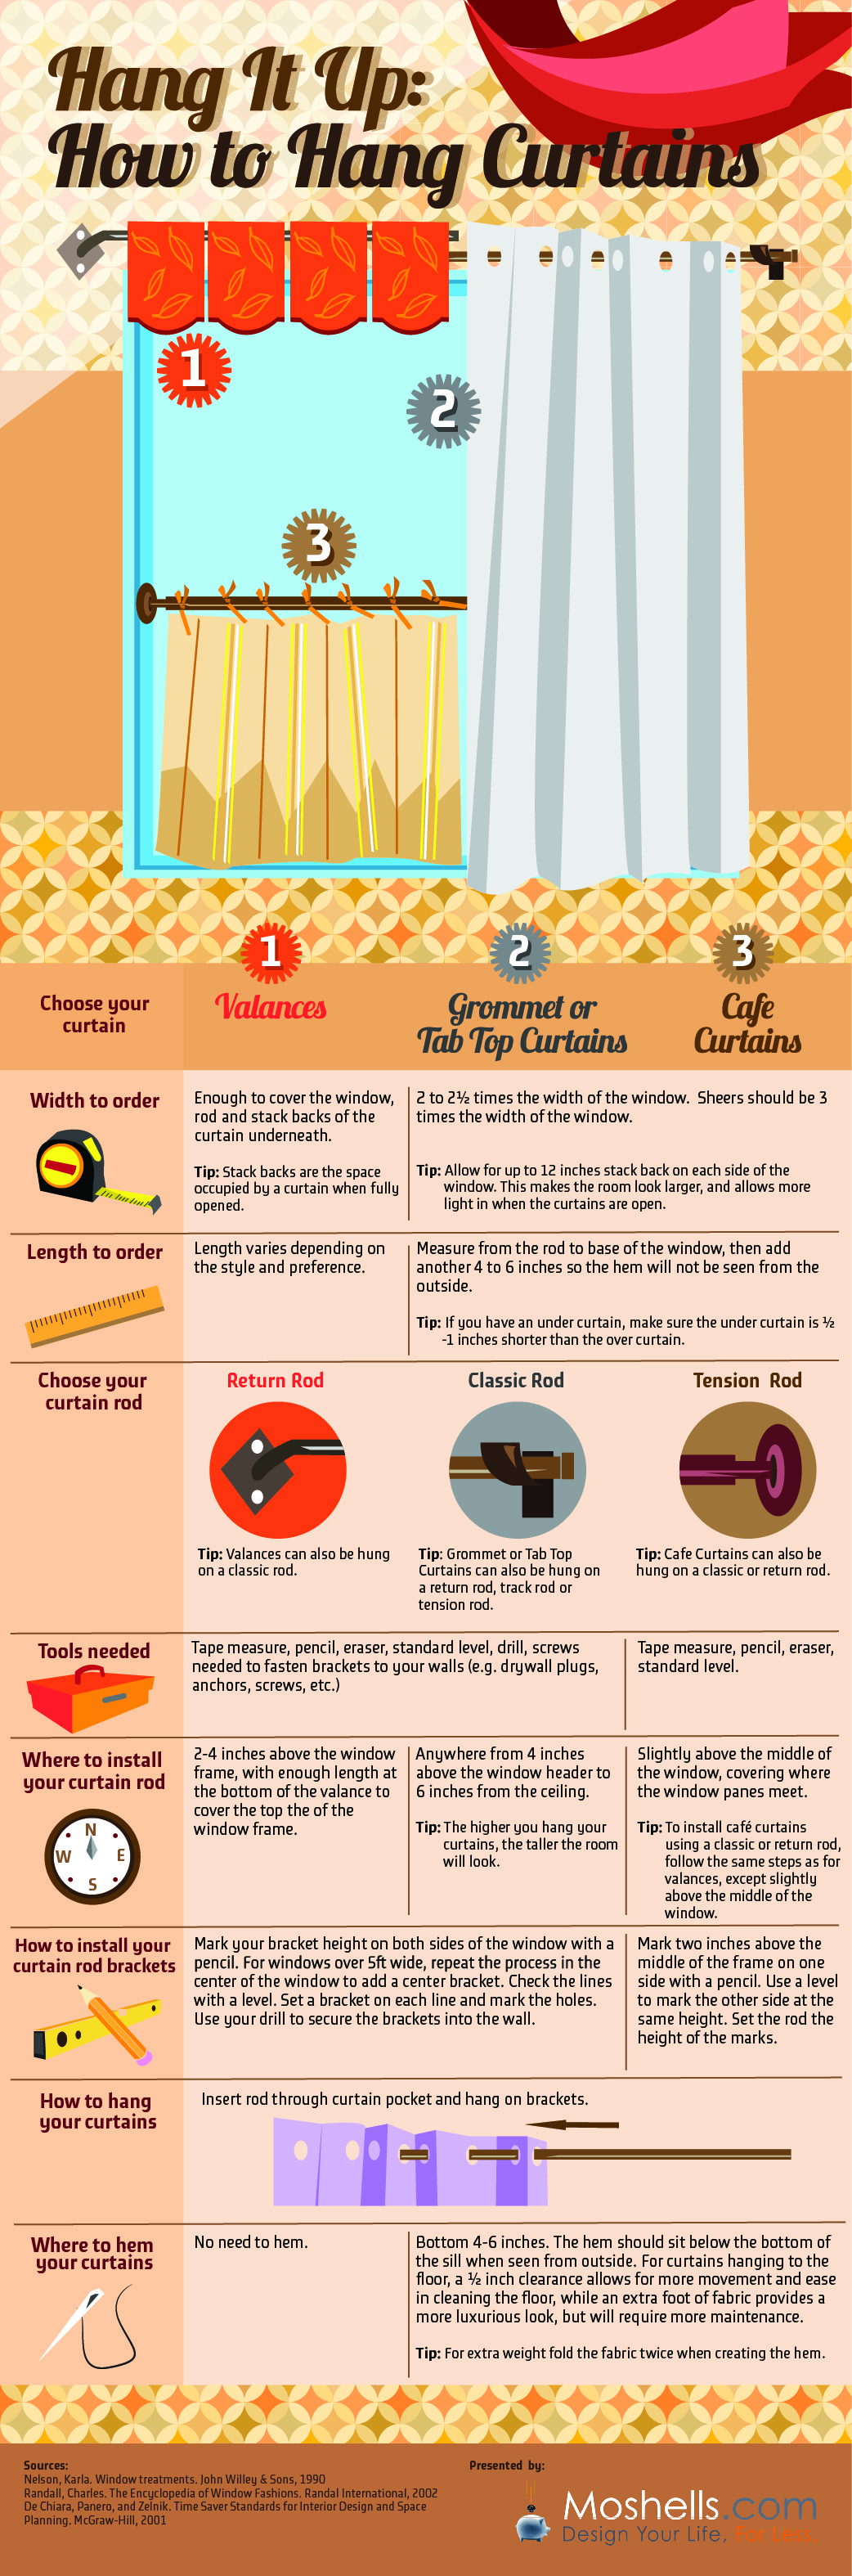 hang it up how to hang curtains infographic